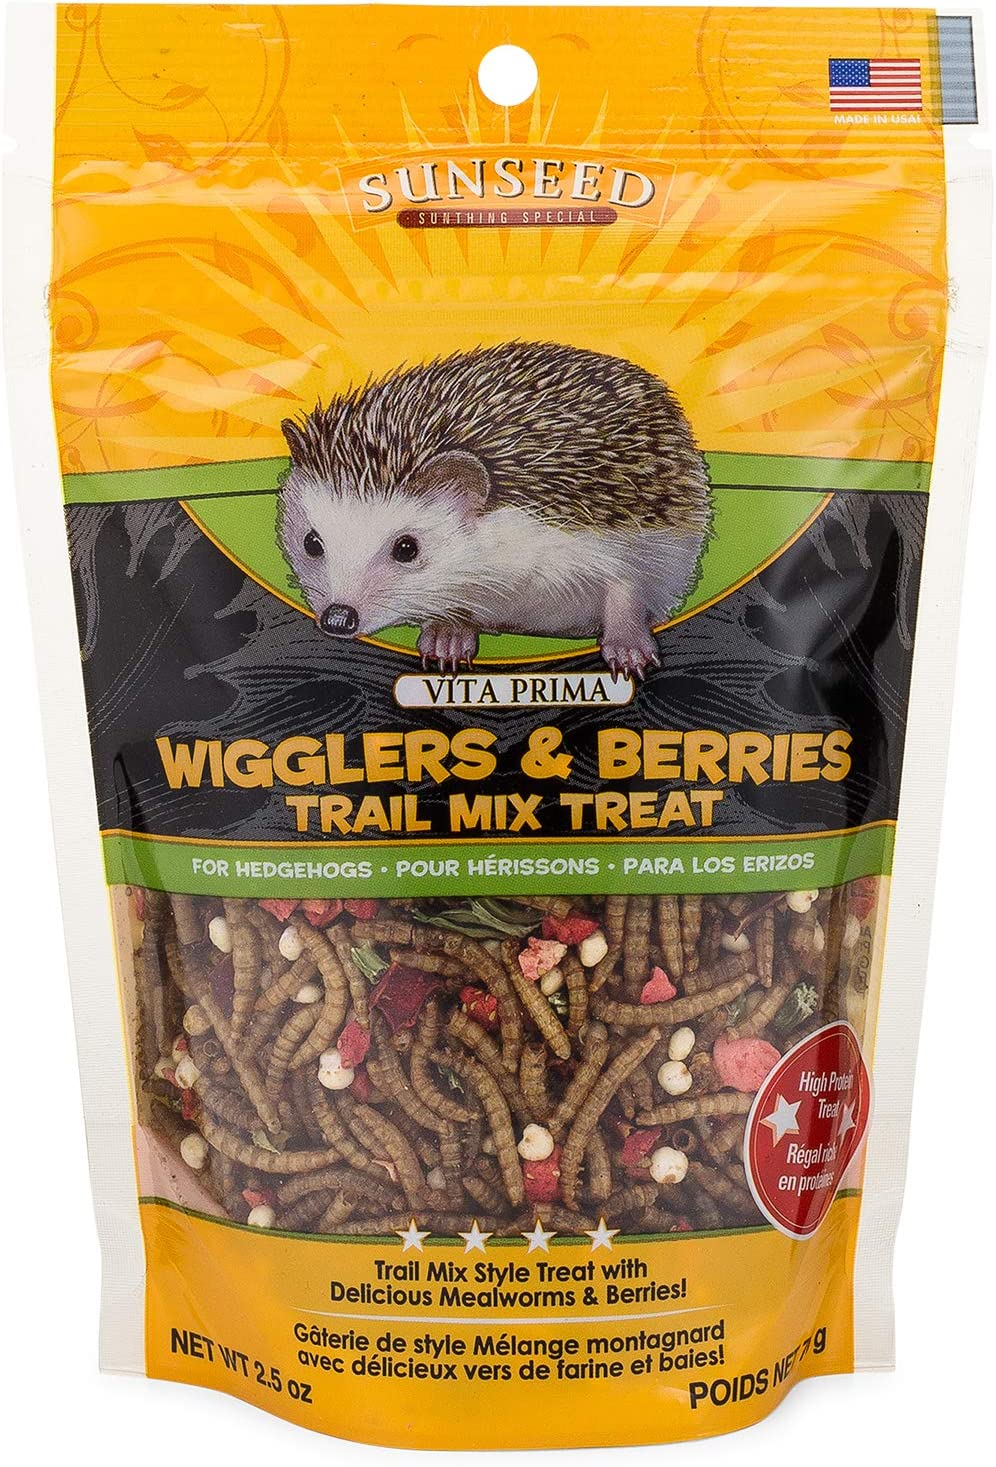 Sunseed 36035 Vita Prima Hedgehog Treat - Wigglers & Berries Trail Mix, 2.5oz